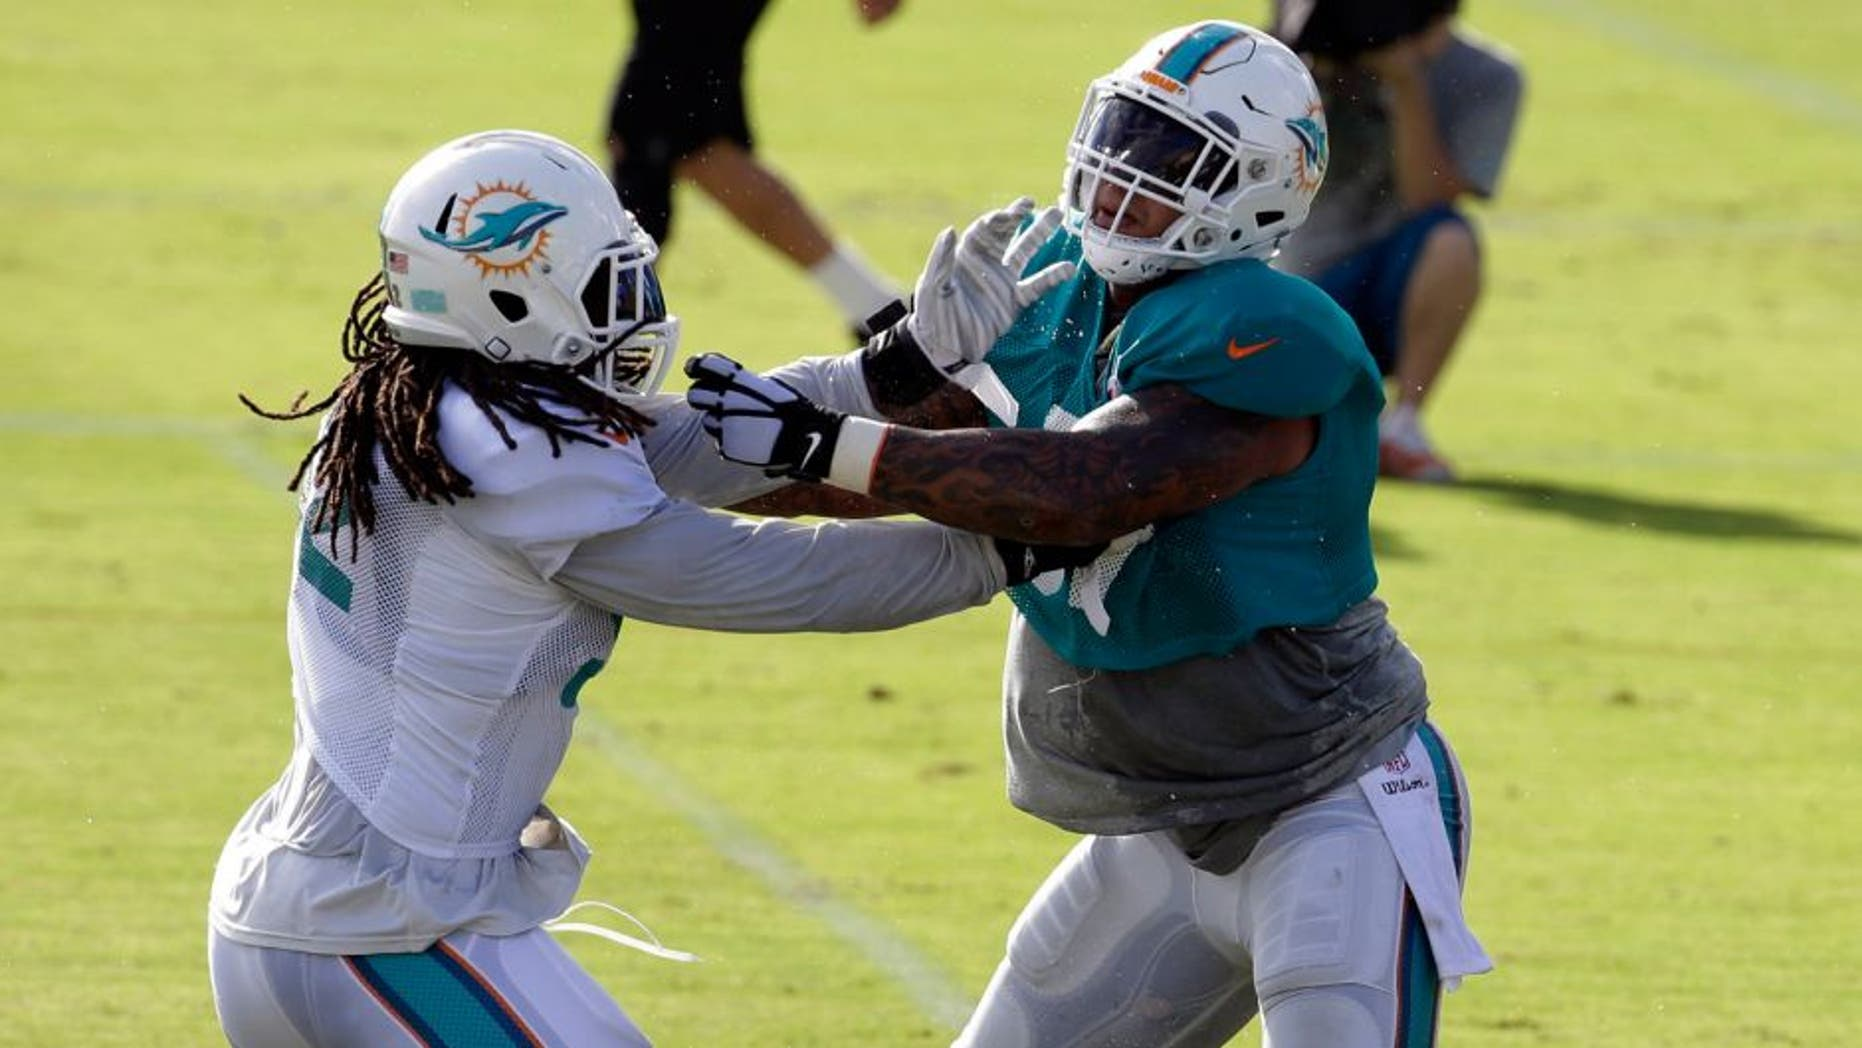 Miami Dolphins center Mike Pouncey, right, and linebacker Kelvin Sheppard, left, do drills during an NFL football training camp practice, Sunday, Aug. 16, 2015, in Davie, Fla. (AP Photo/Lynne Sladky)